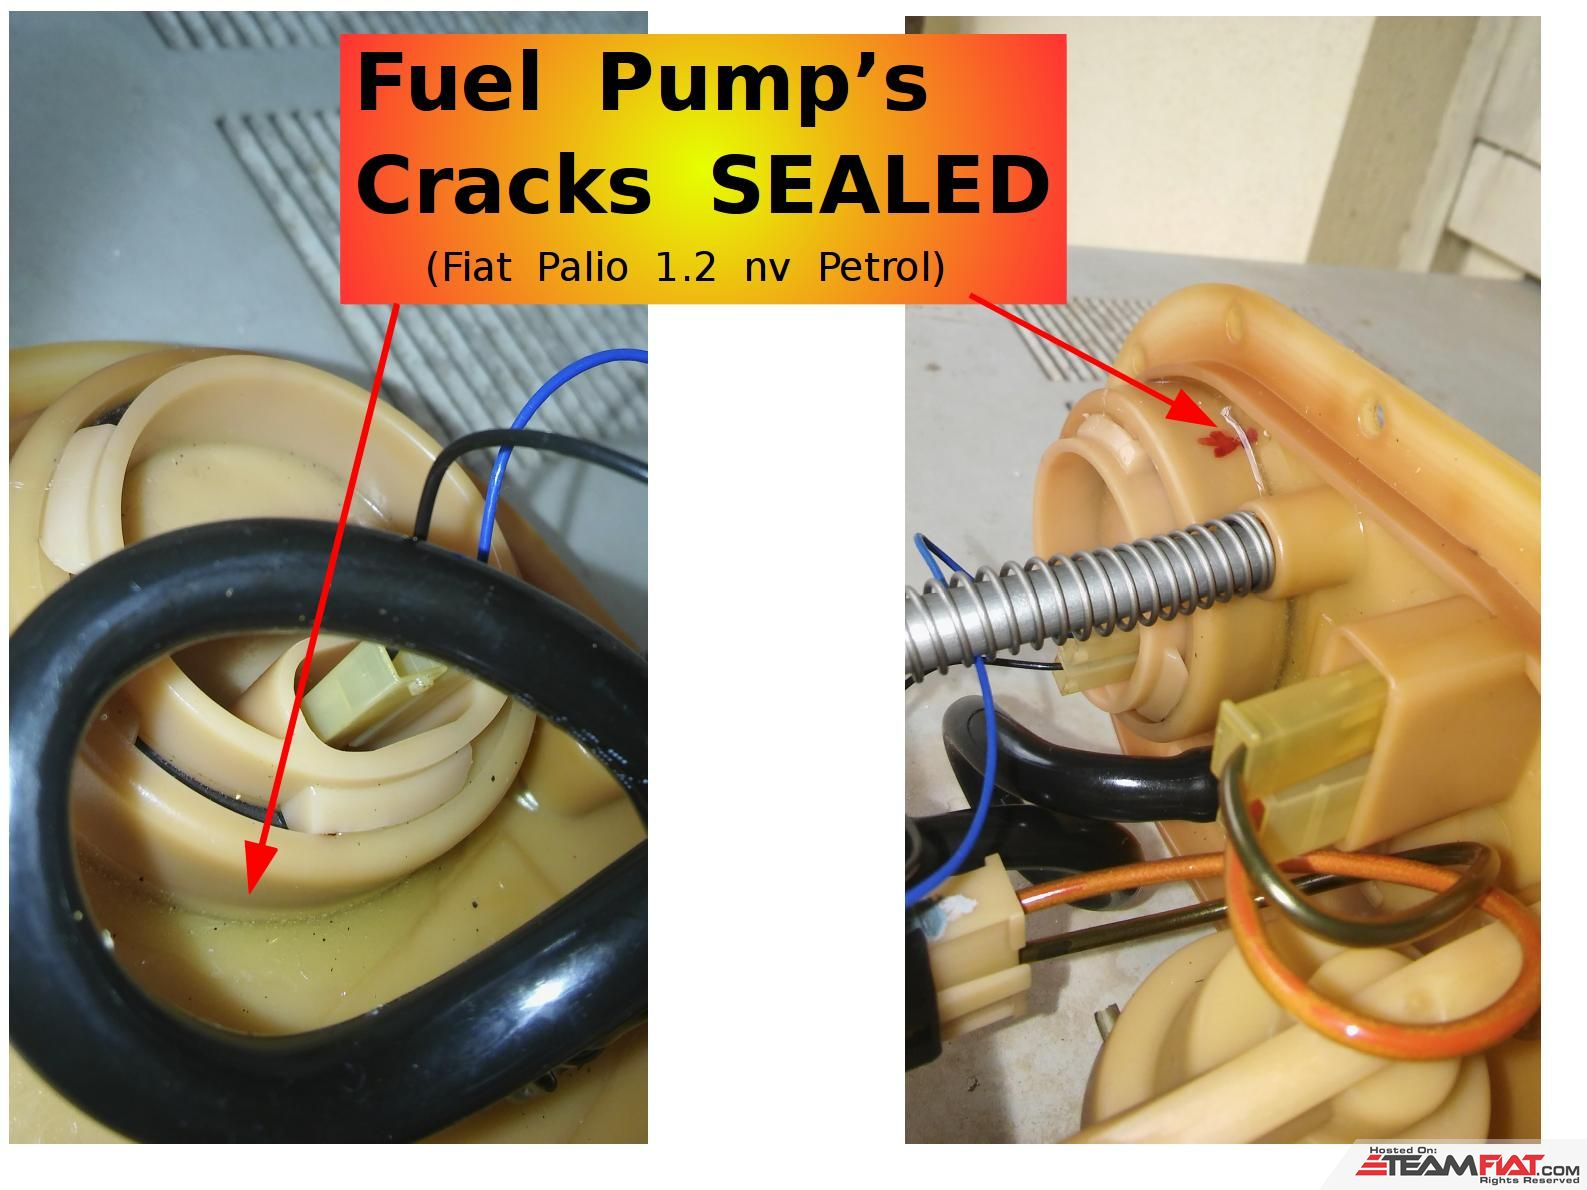 008-Fuel pump crack sealed.jpg